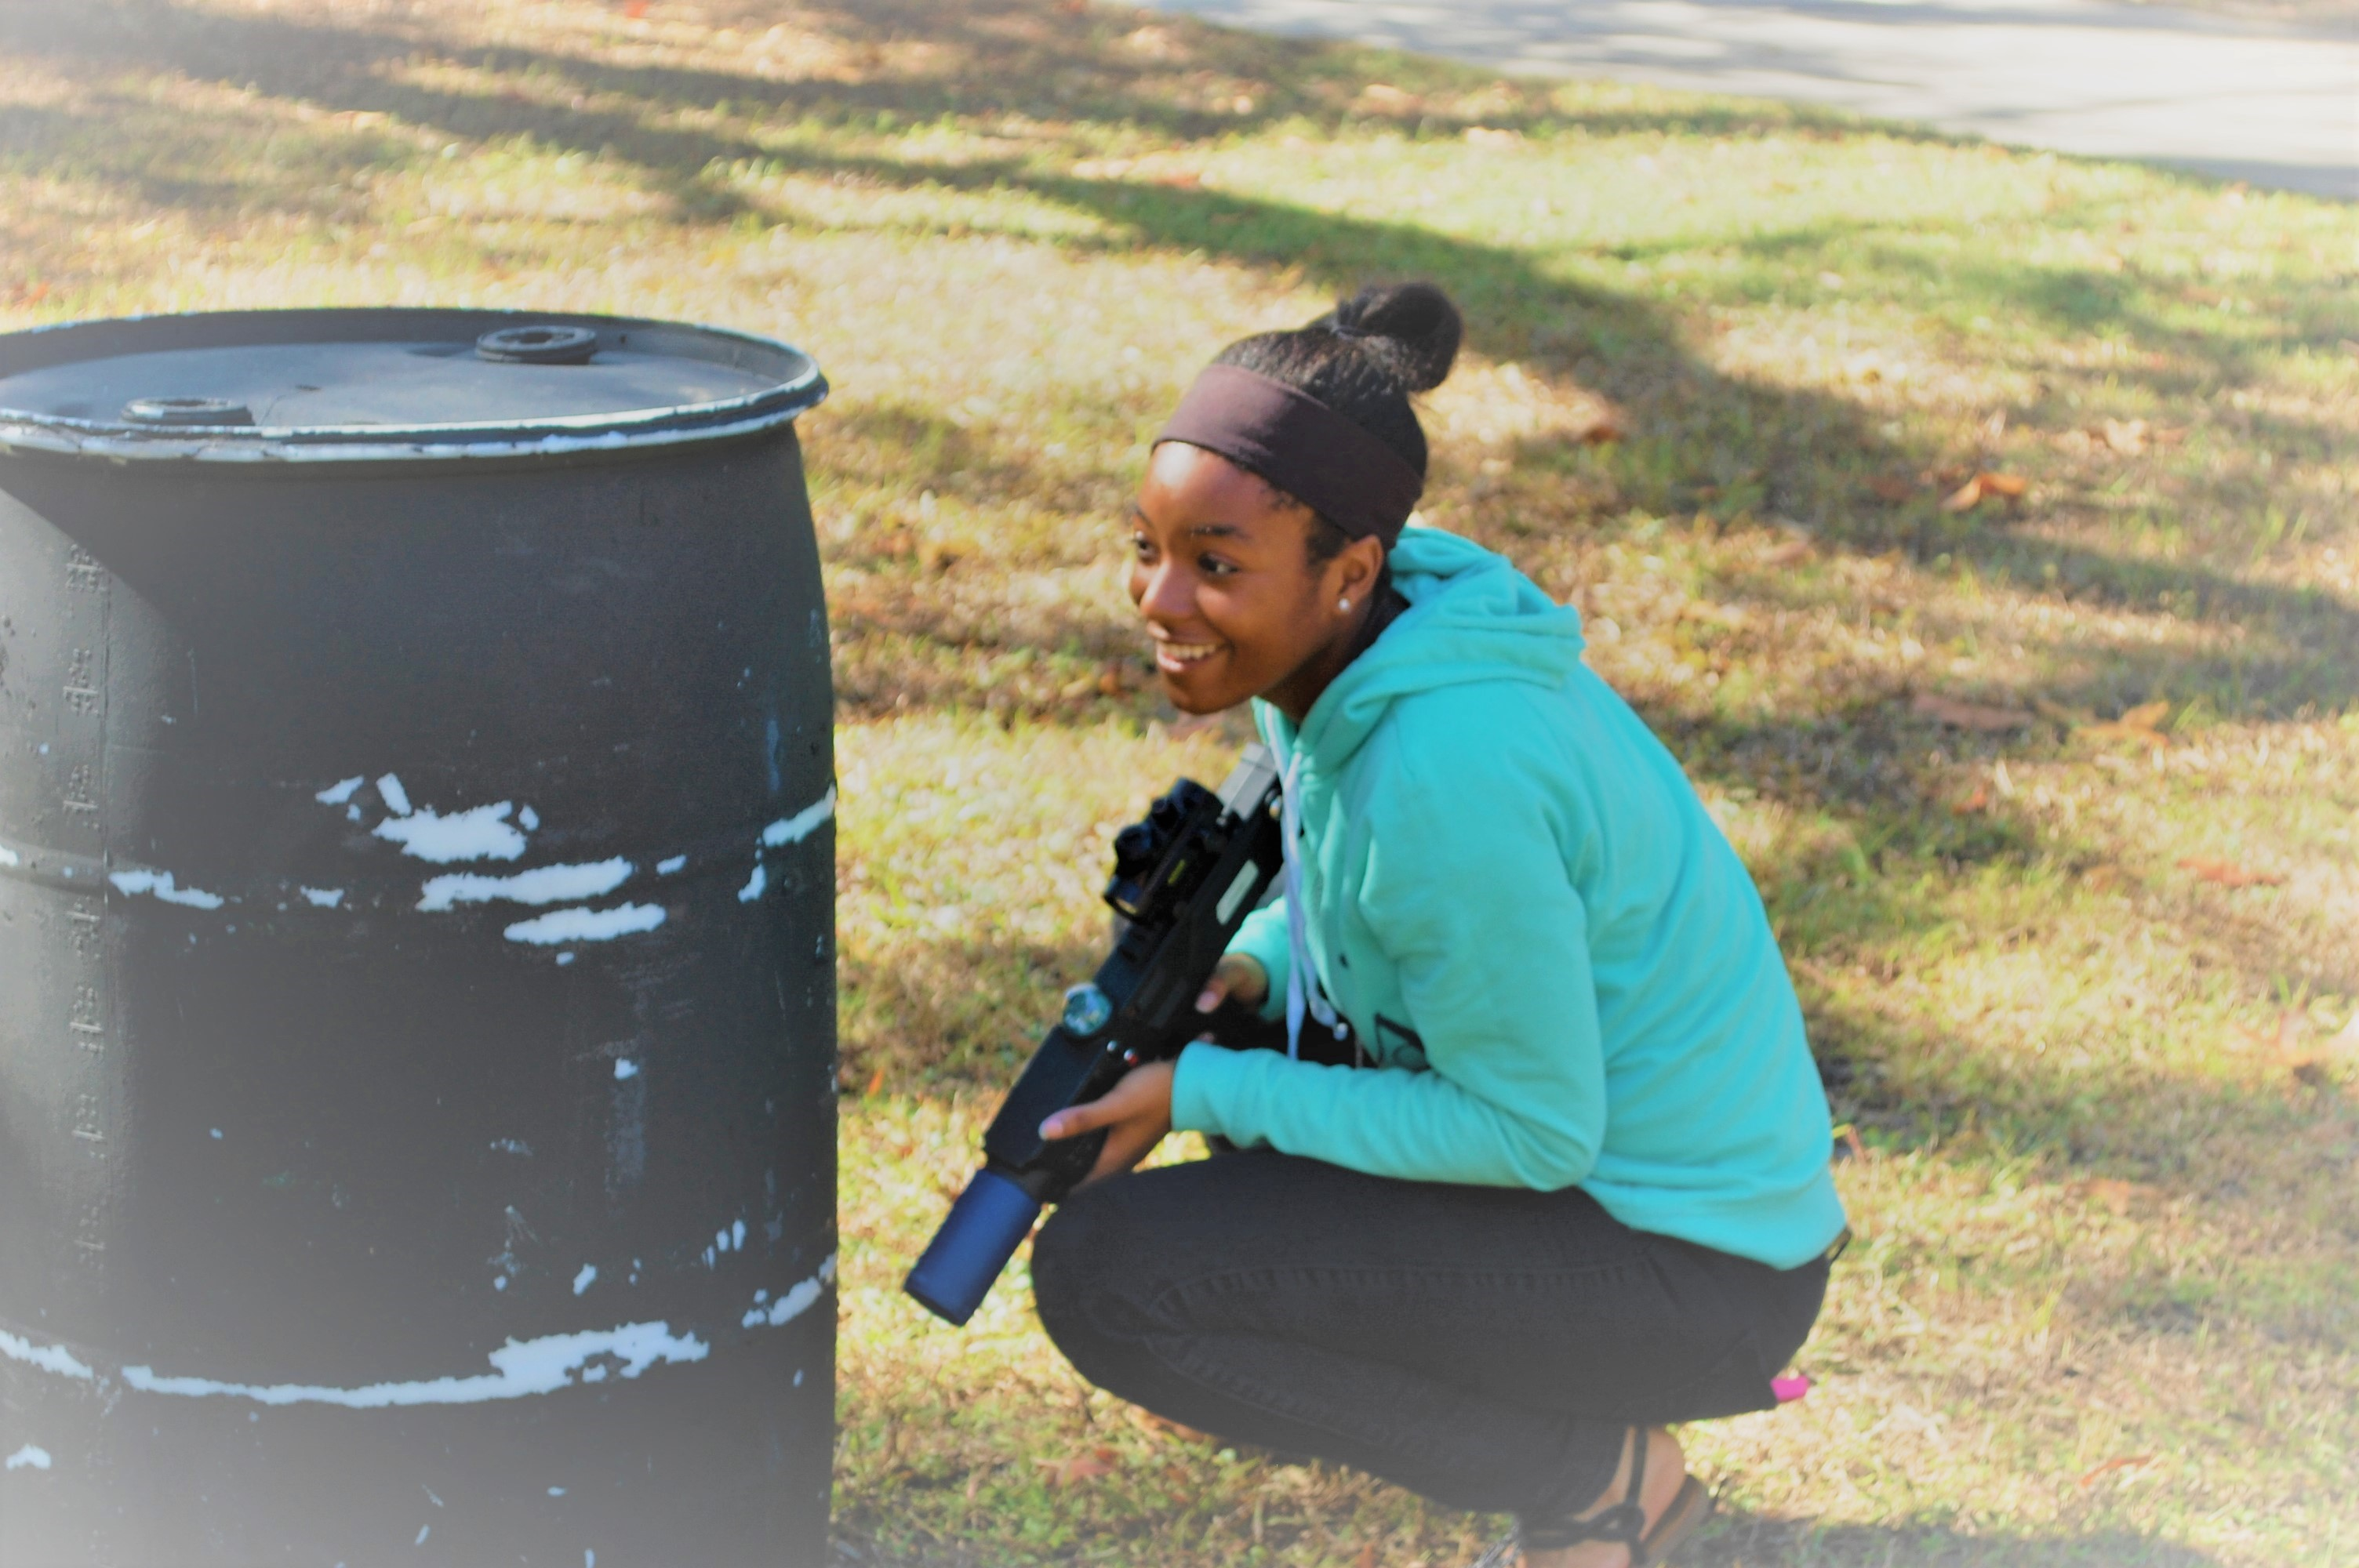 College Events in Florida - Stealth Mobile Laser Tag (49)